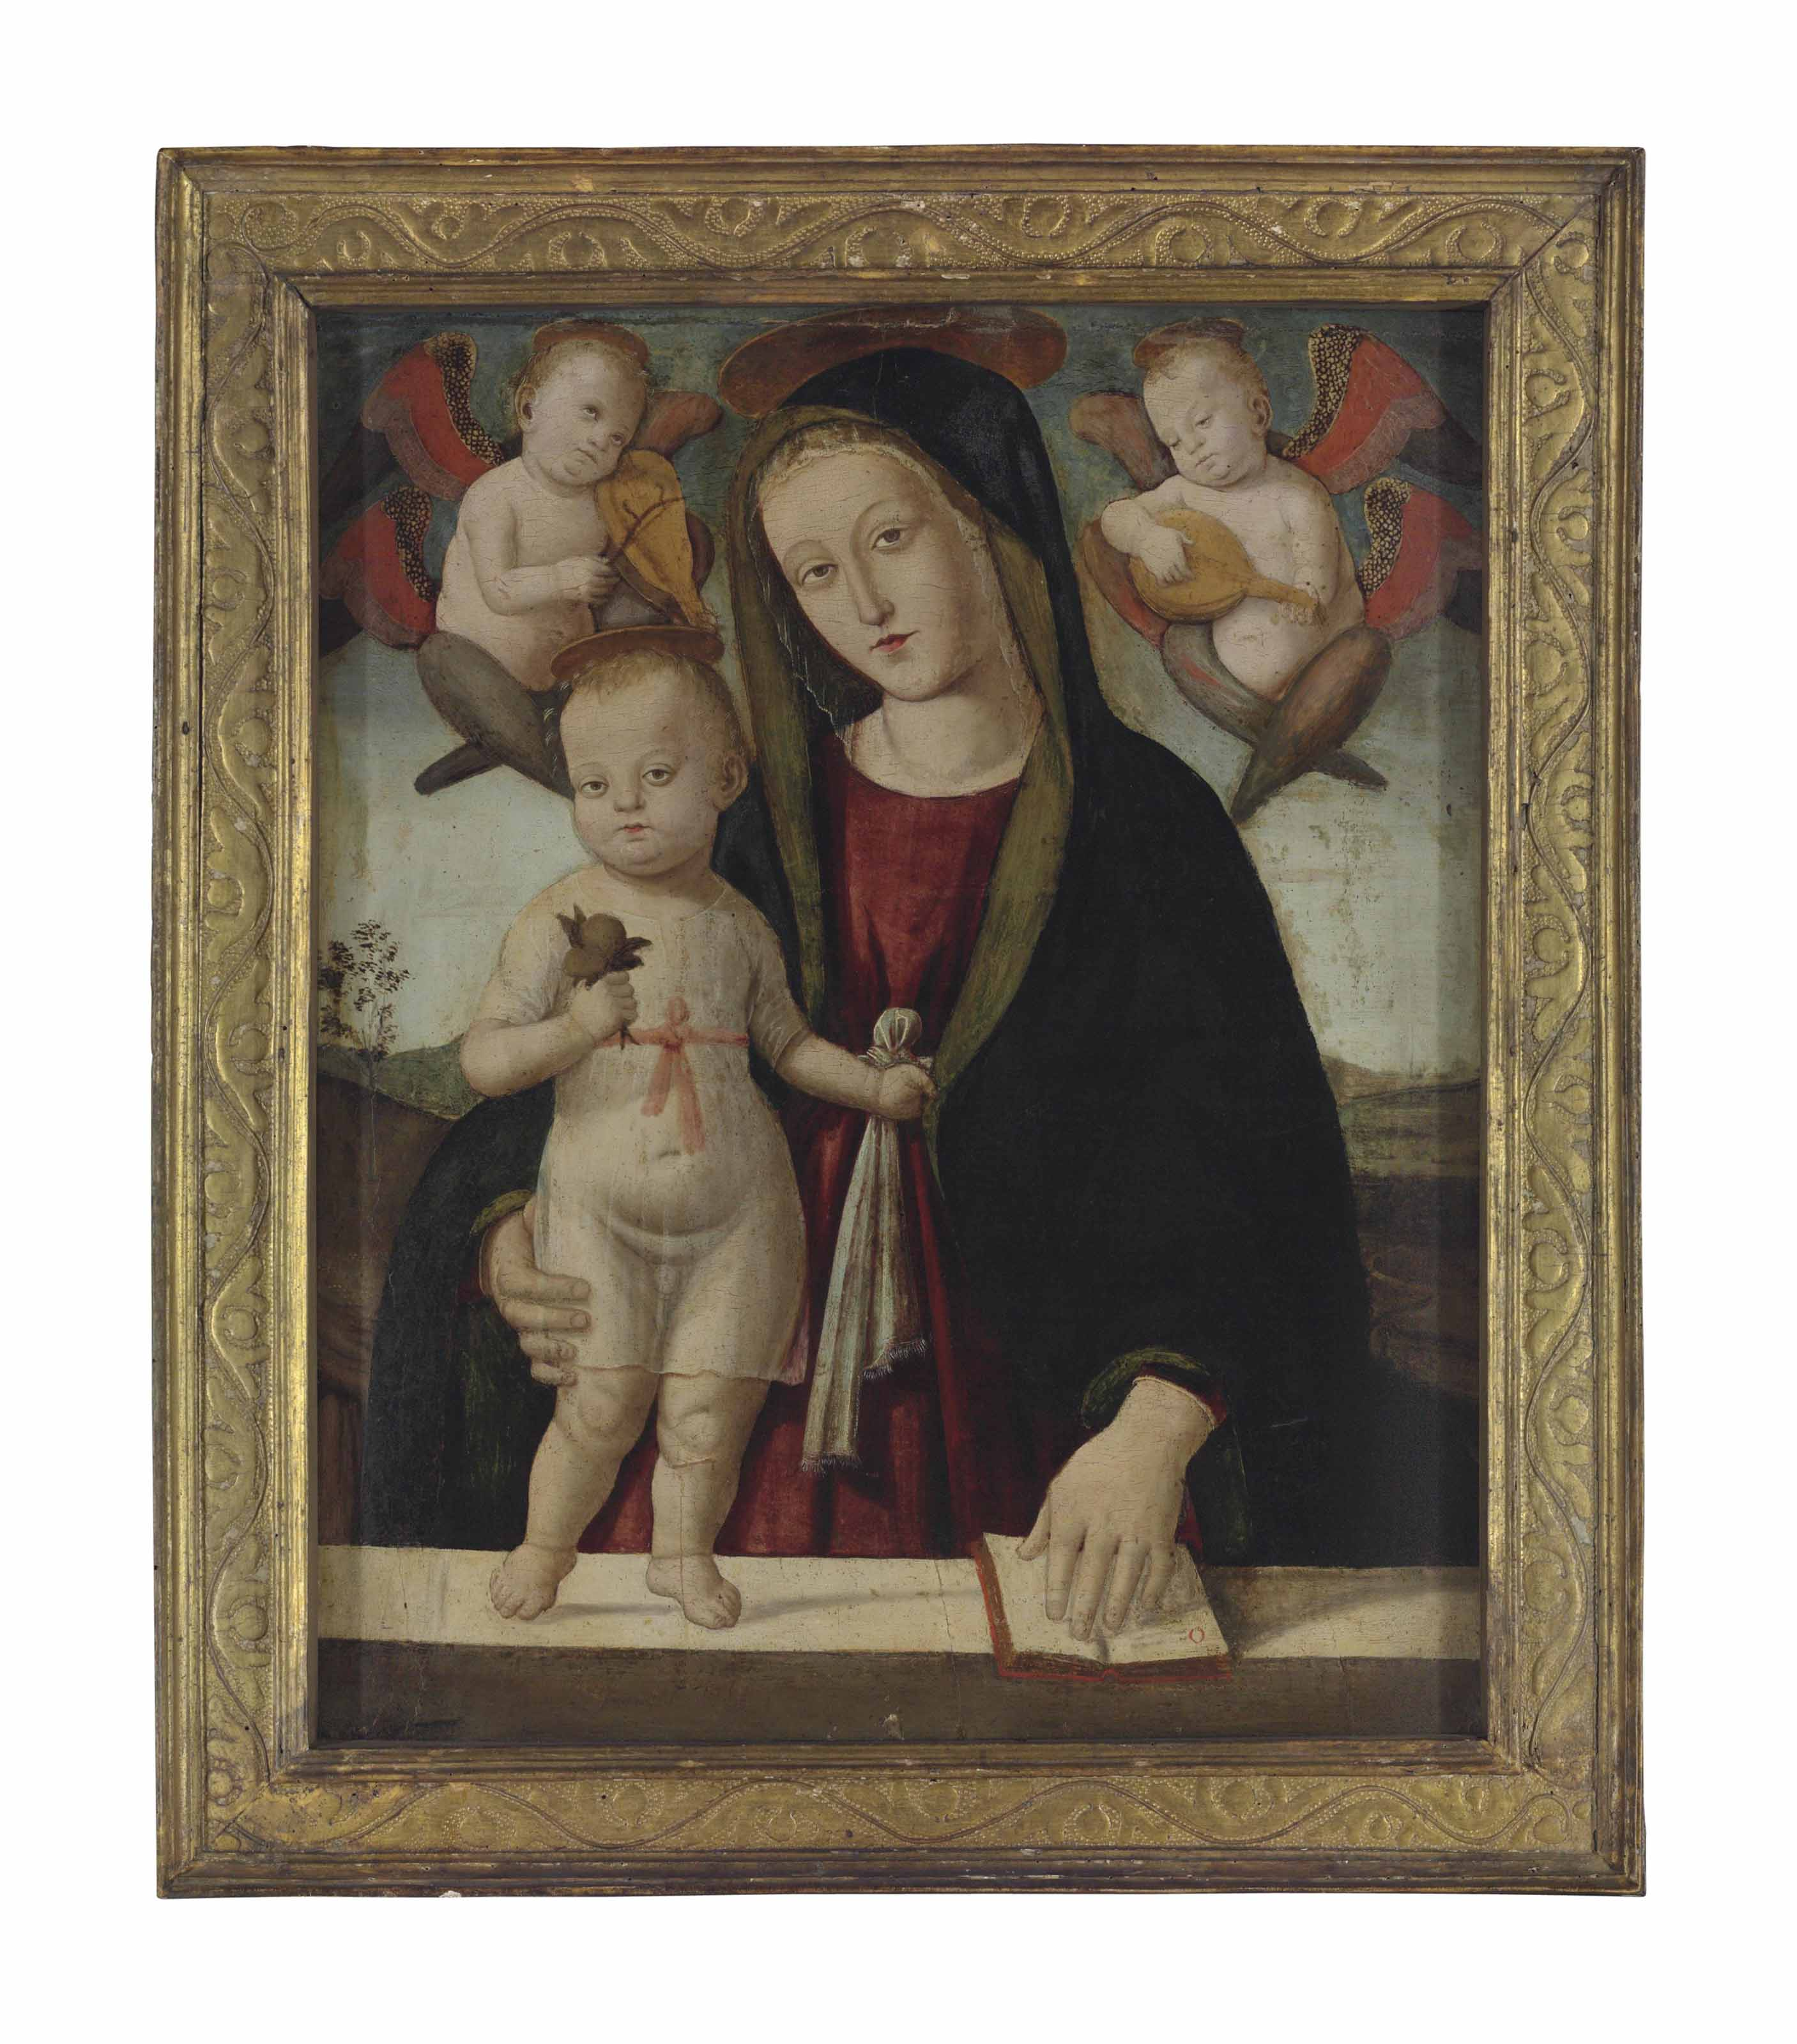 The Madonna and Child with angels playing instruments